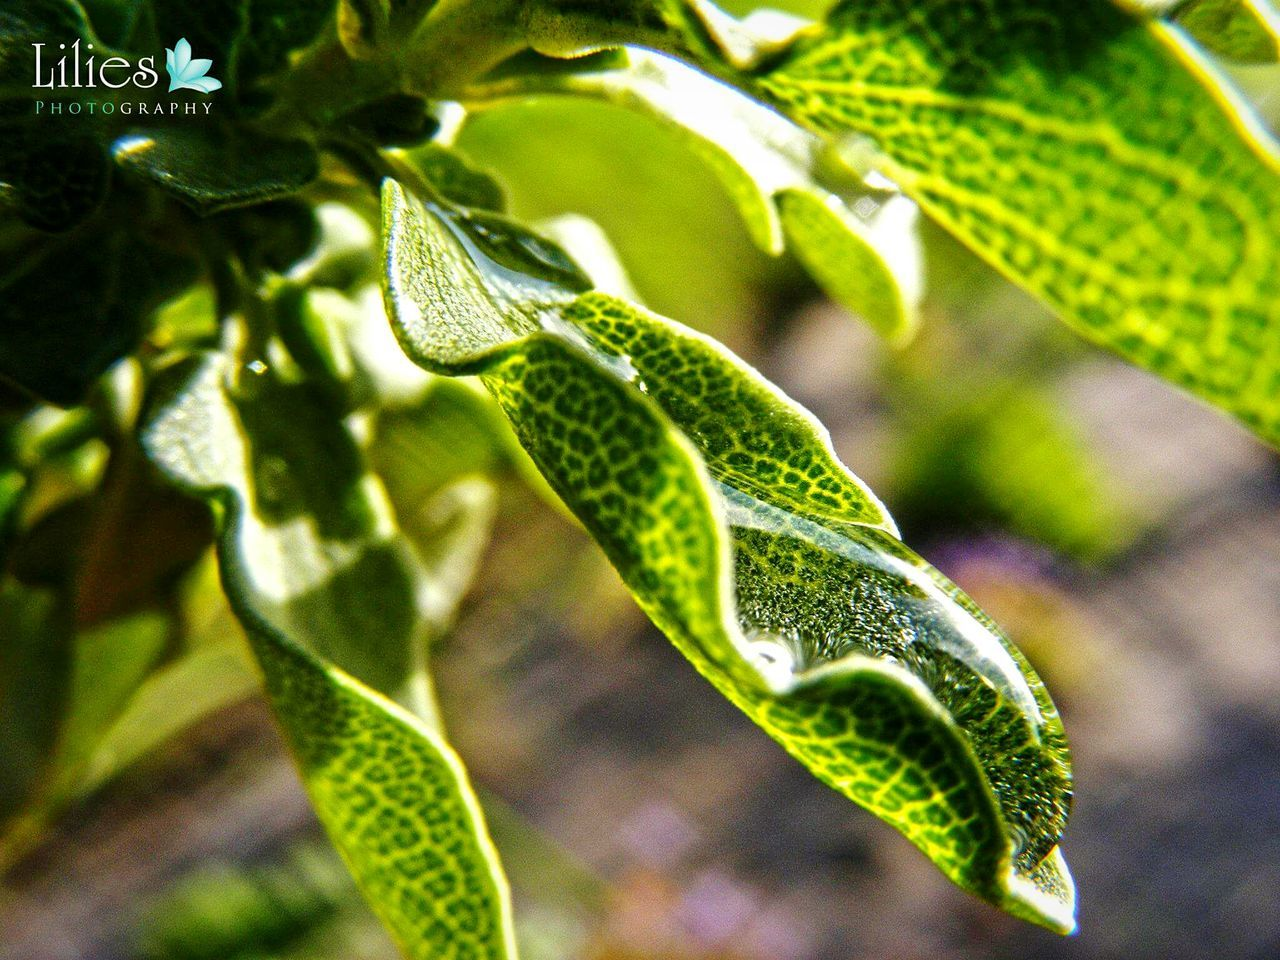 leaf, green color, growth, plant, close-up, no people, day, nature, focus on foreground, outdoors, beauty in nature, fragility, animal themes, freshness